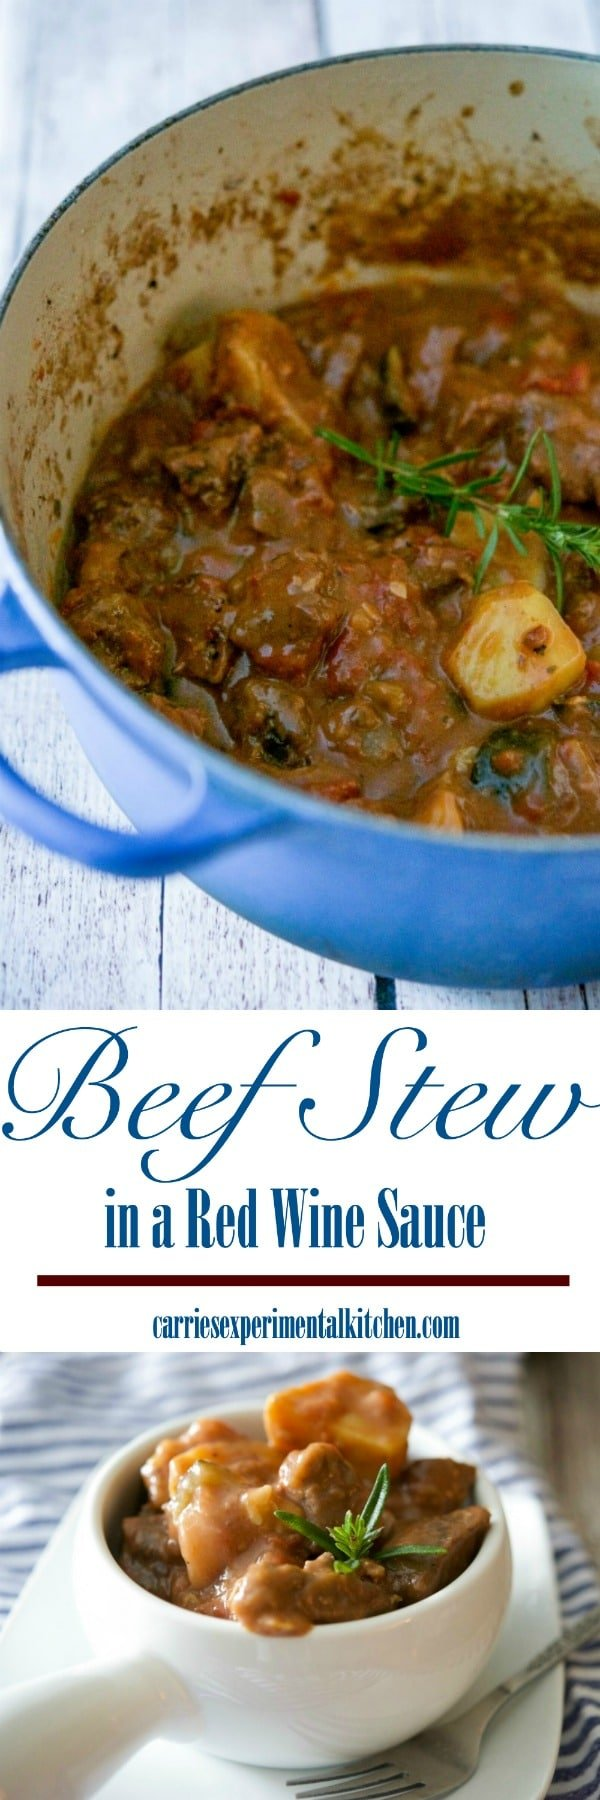 Beef stew made with zucchini, garlic, onions, fire roasted tomatoes, fresh rosemary, horseradish and red wine is unbelievably delicious. #stew #beef #wine